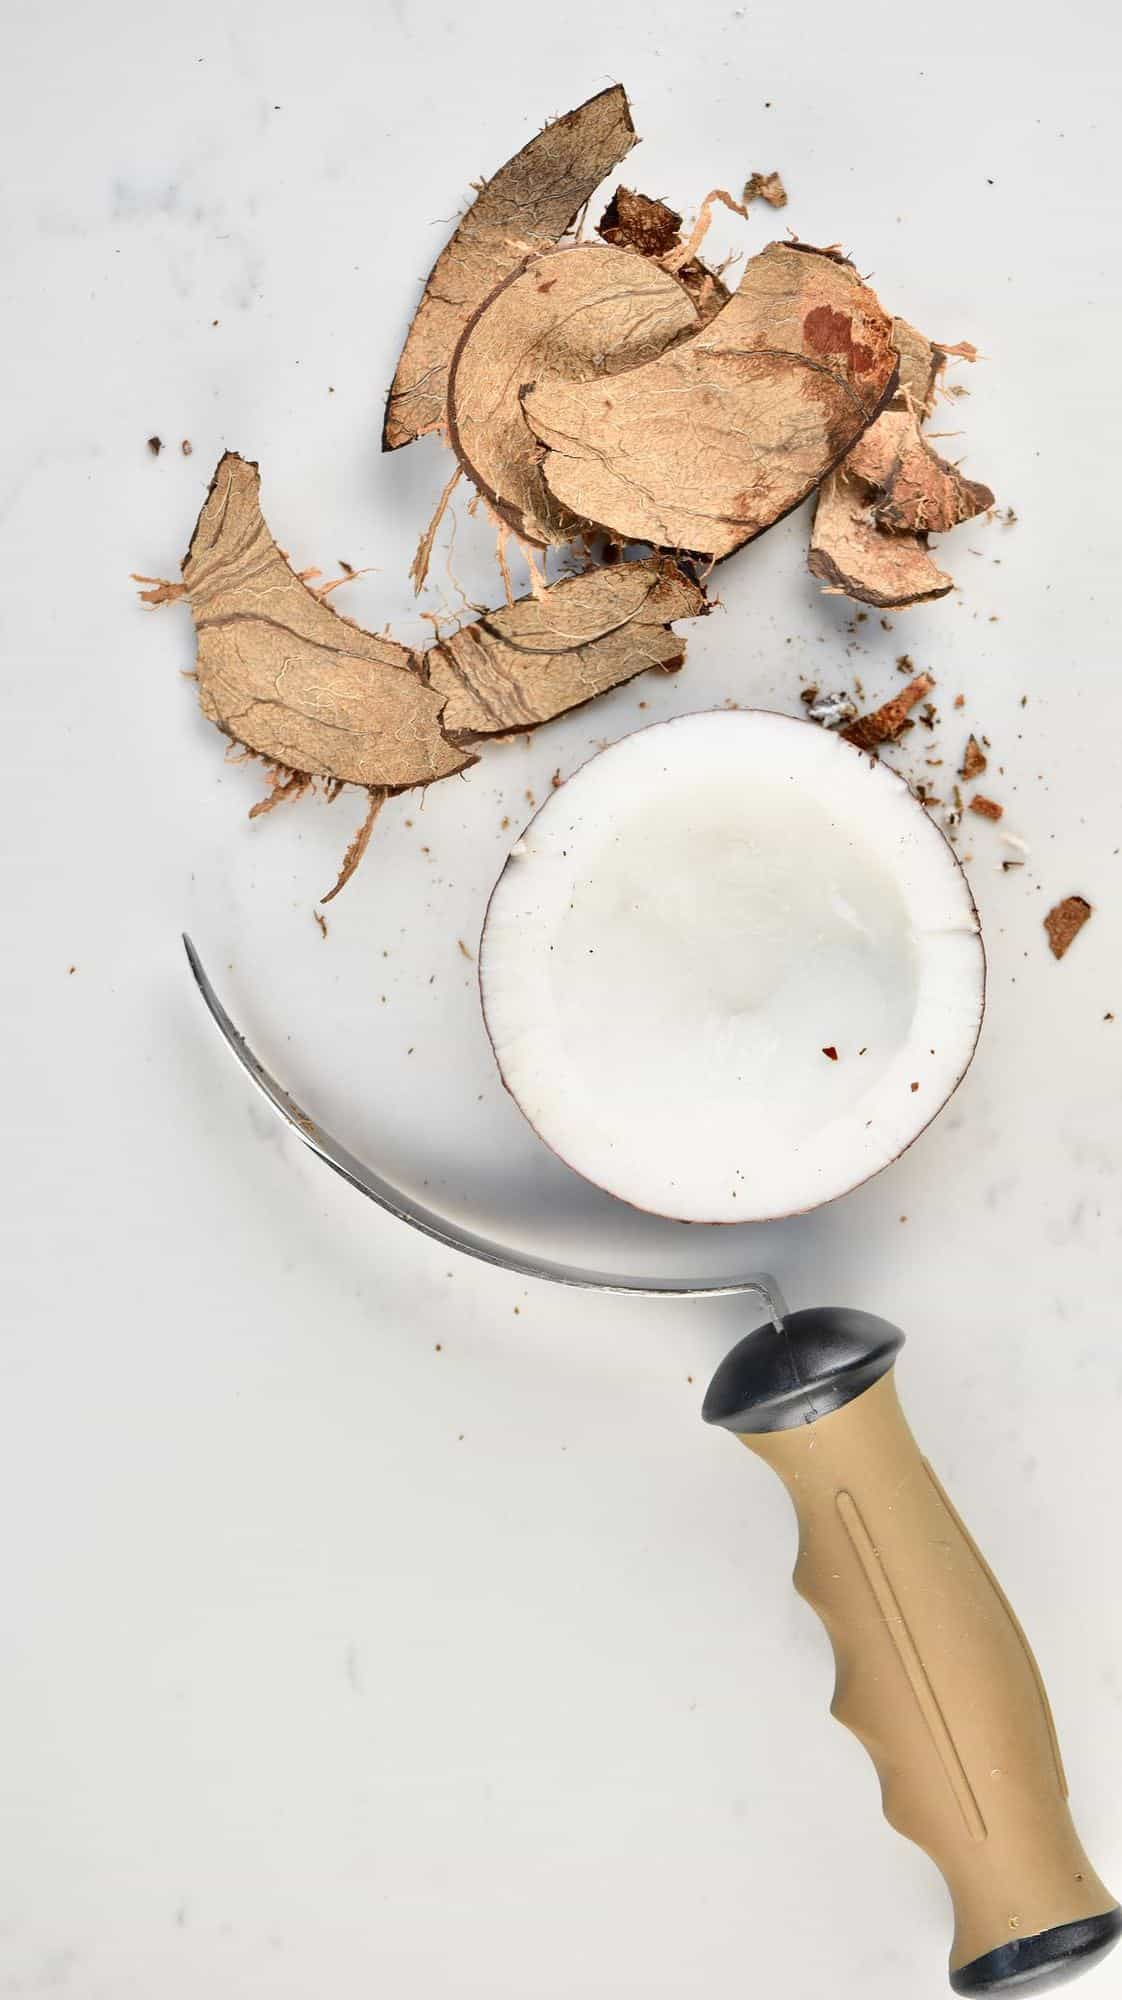 Broken coconut shell, coconut meat and a tool for removing the meat from the shell